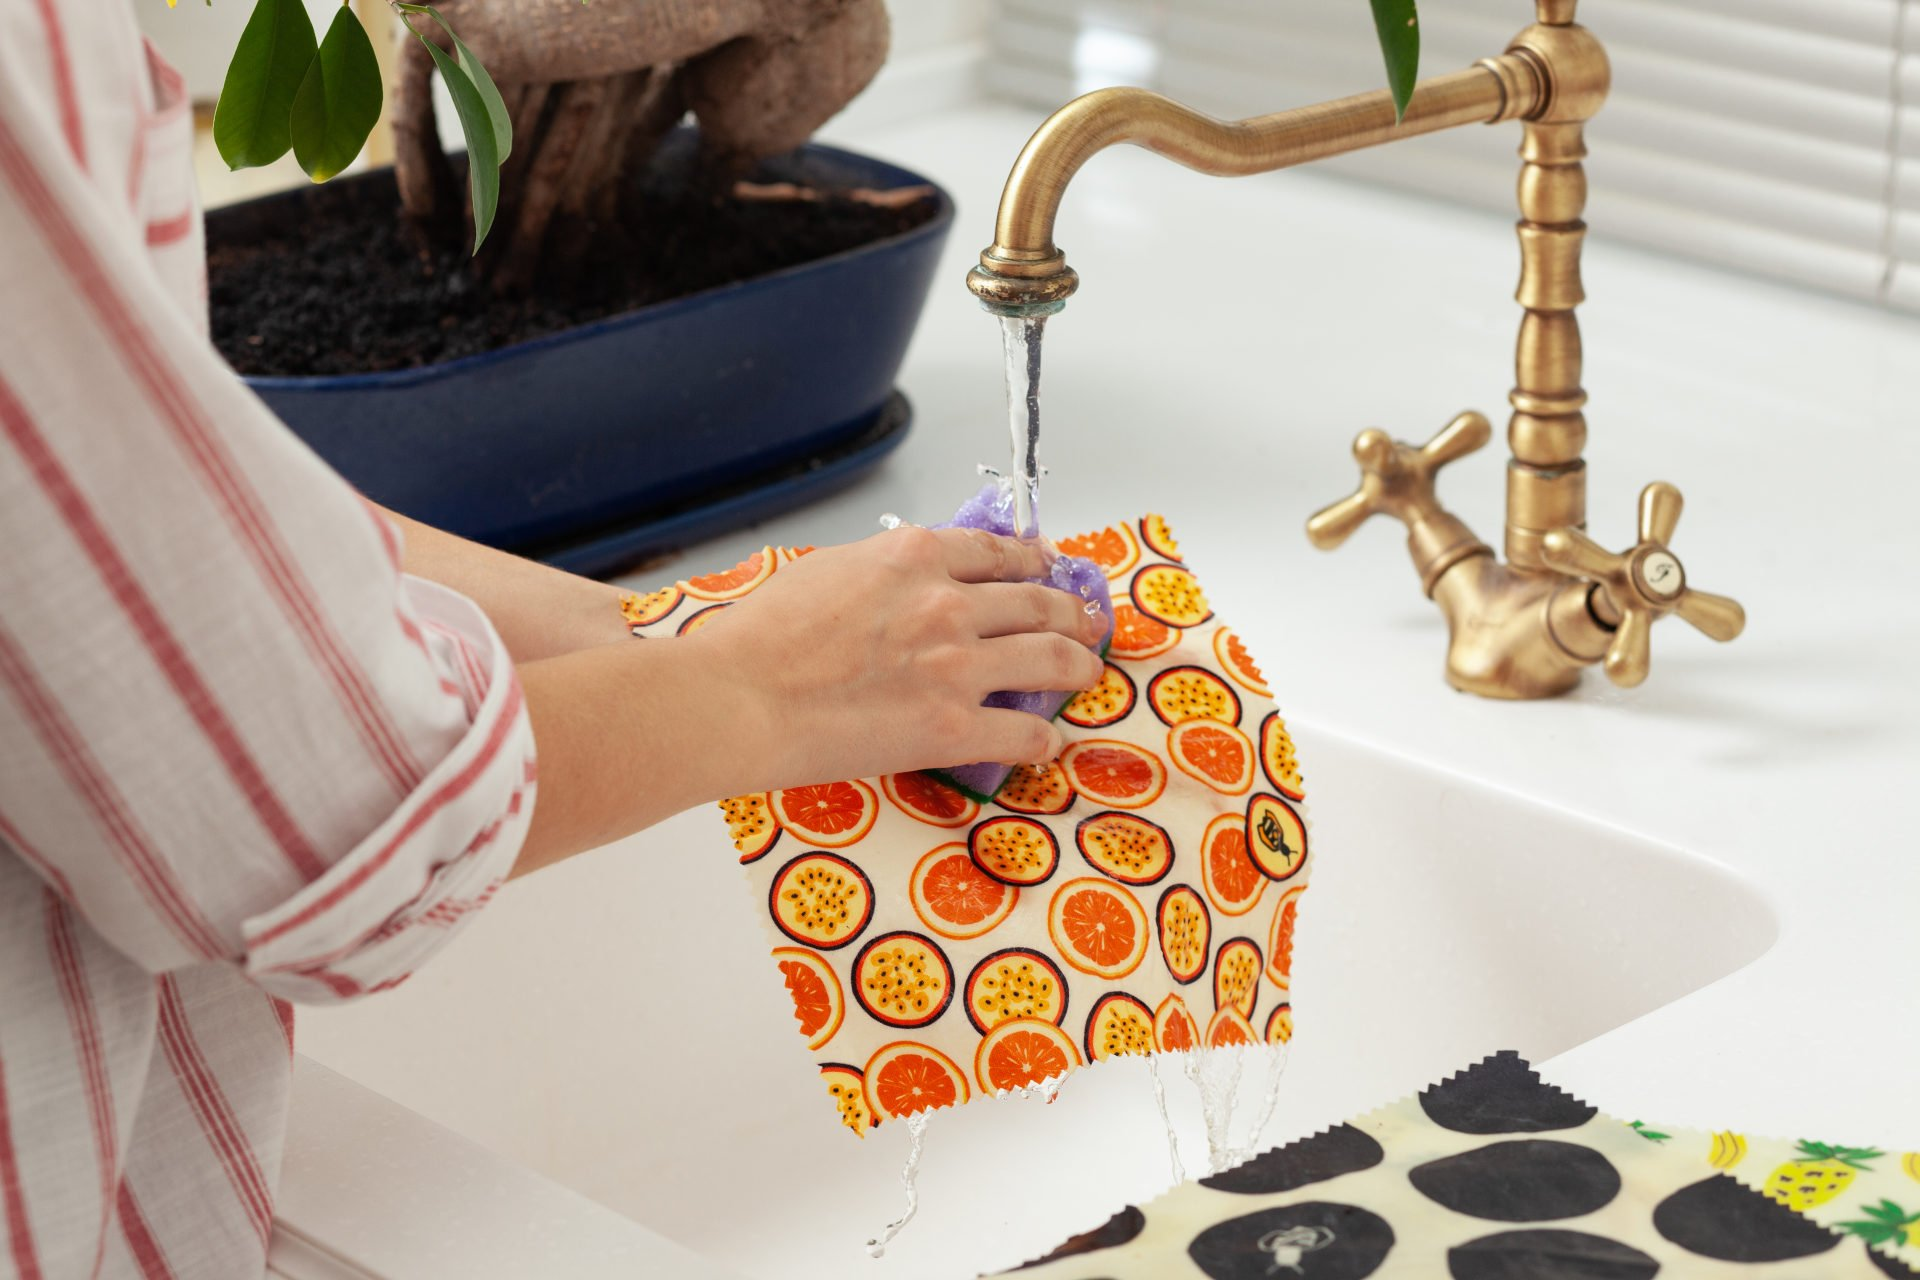 How Do You Wash Beeswax Wraps?